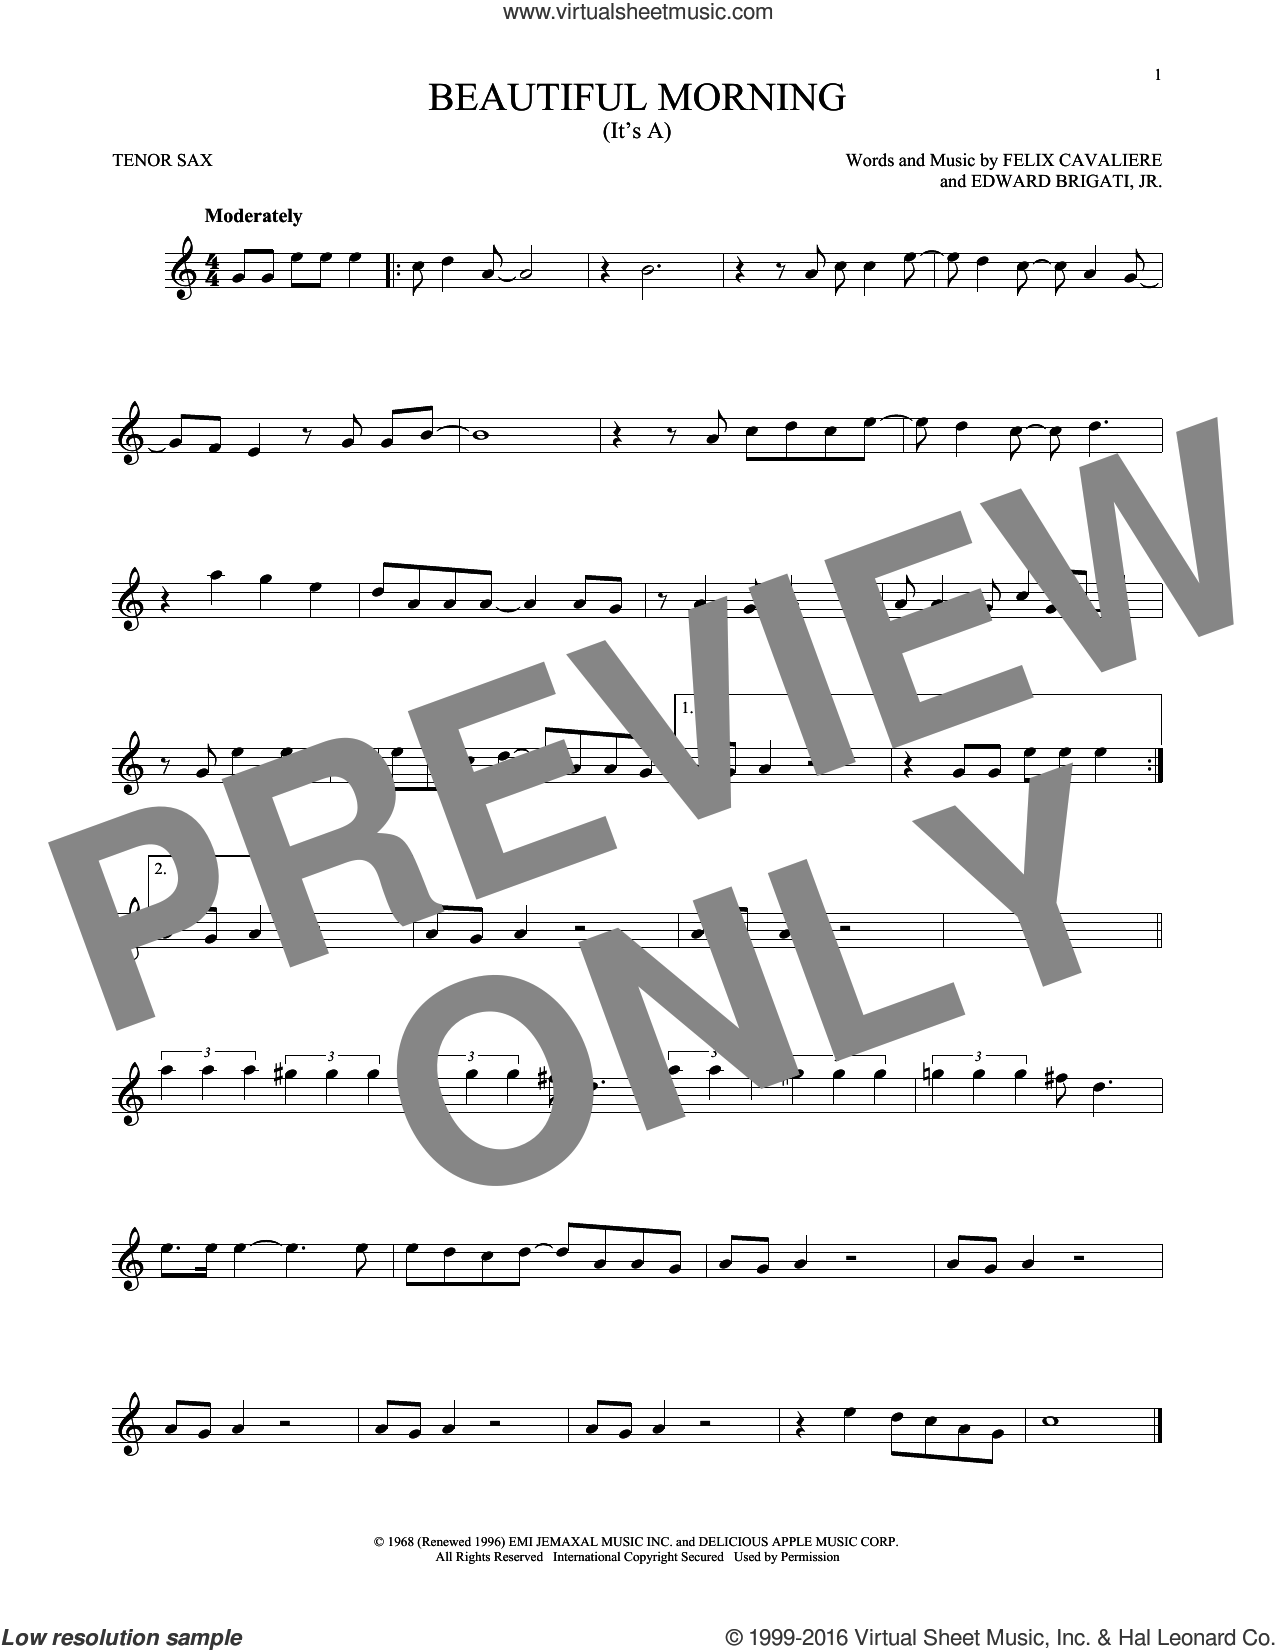 (It's A) Beautiful Morning sheet music for tenor saxophone solo by The Rascals, Edward Brigati, Jr. and Felix Cavaliere, intermediate skill level